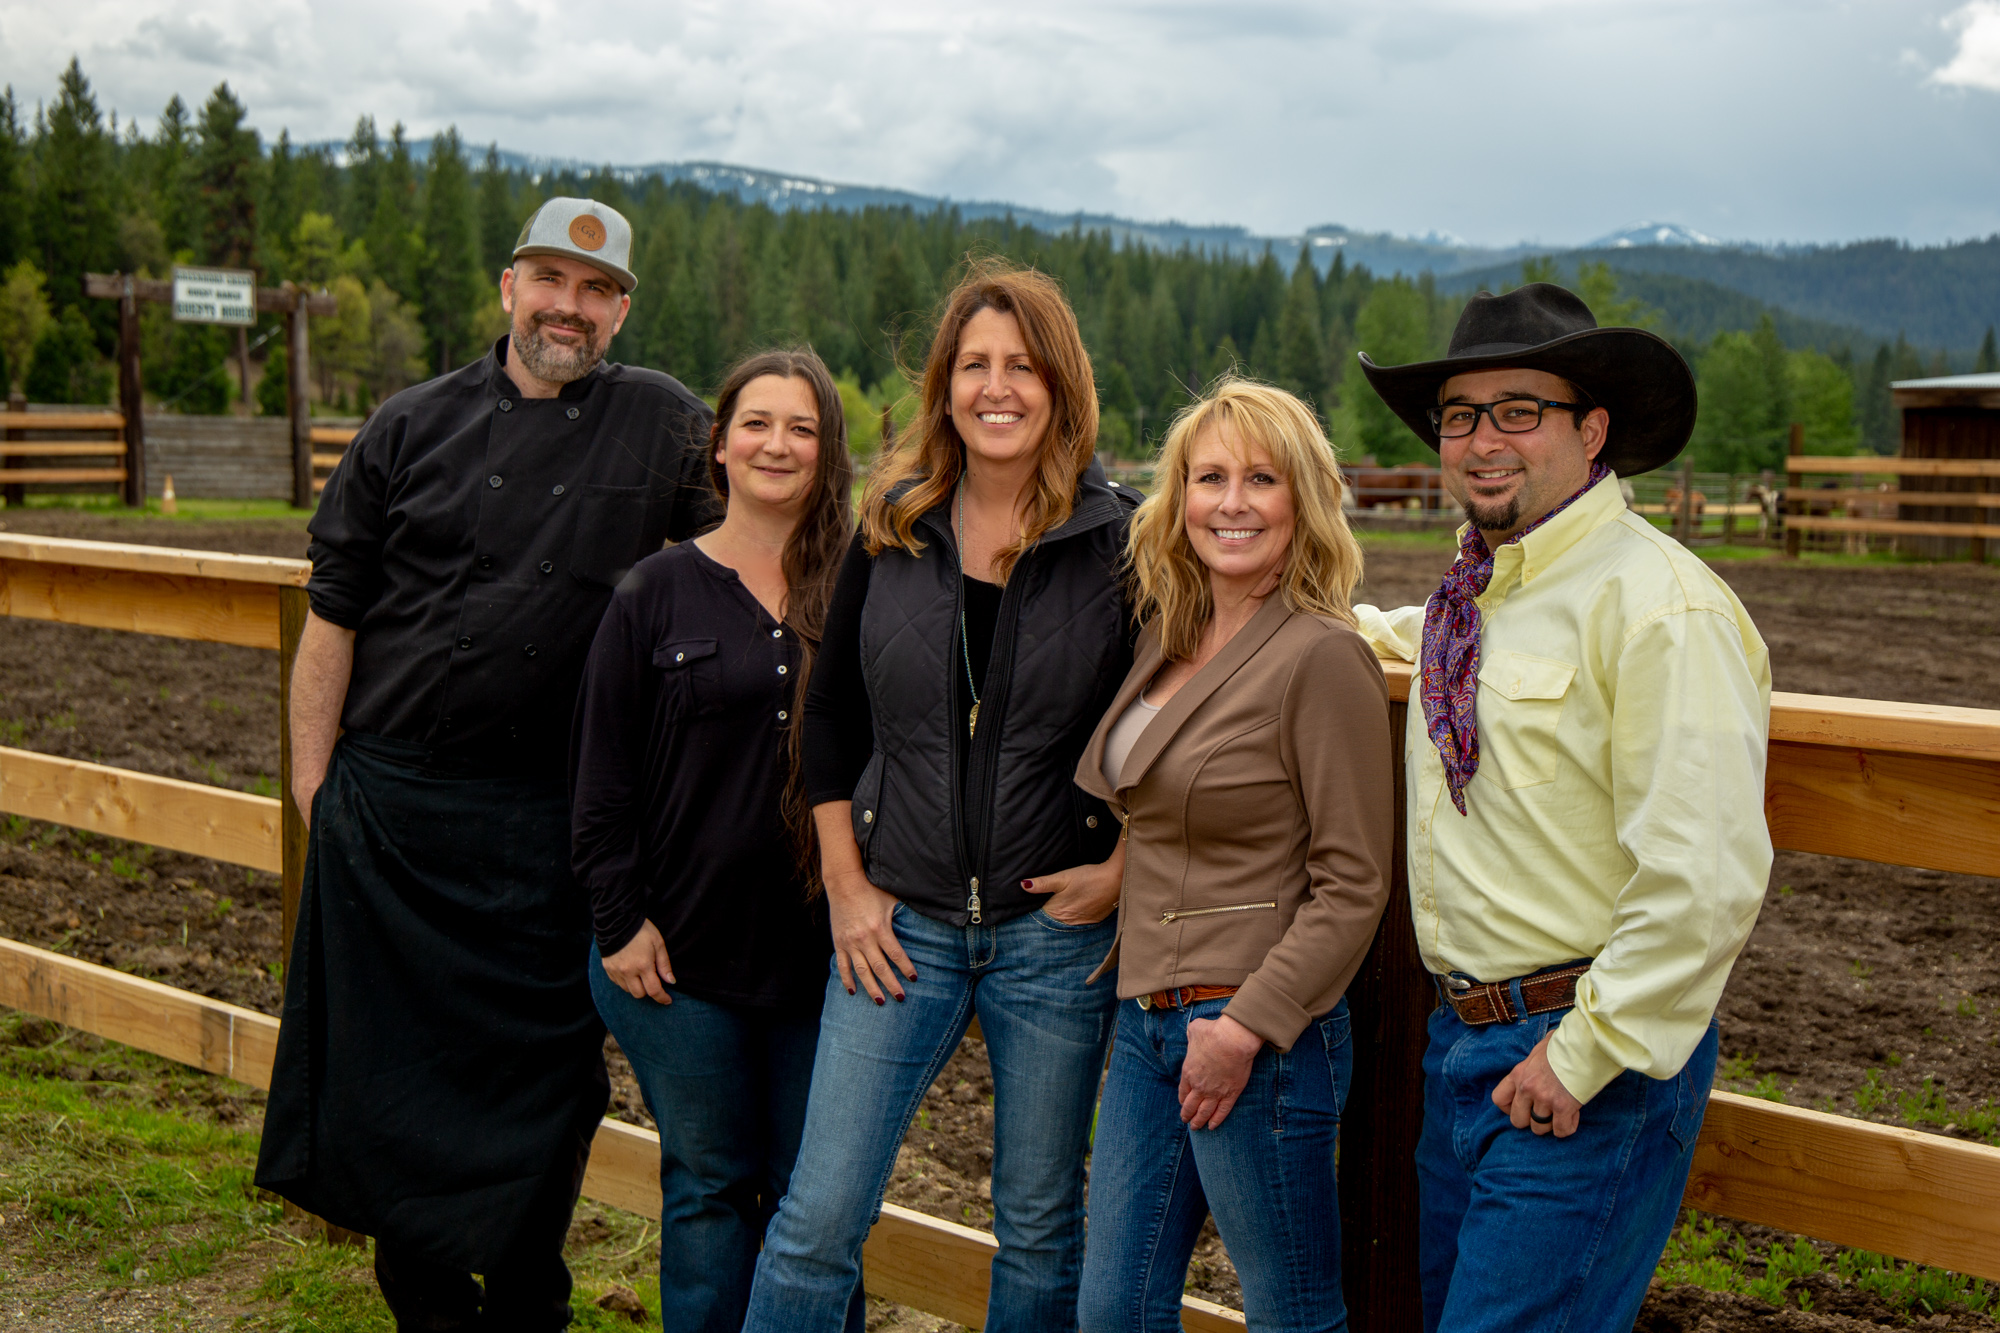 Meet our team ready to make your stay at Greenhorn Ranch unforgettable